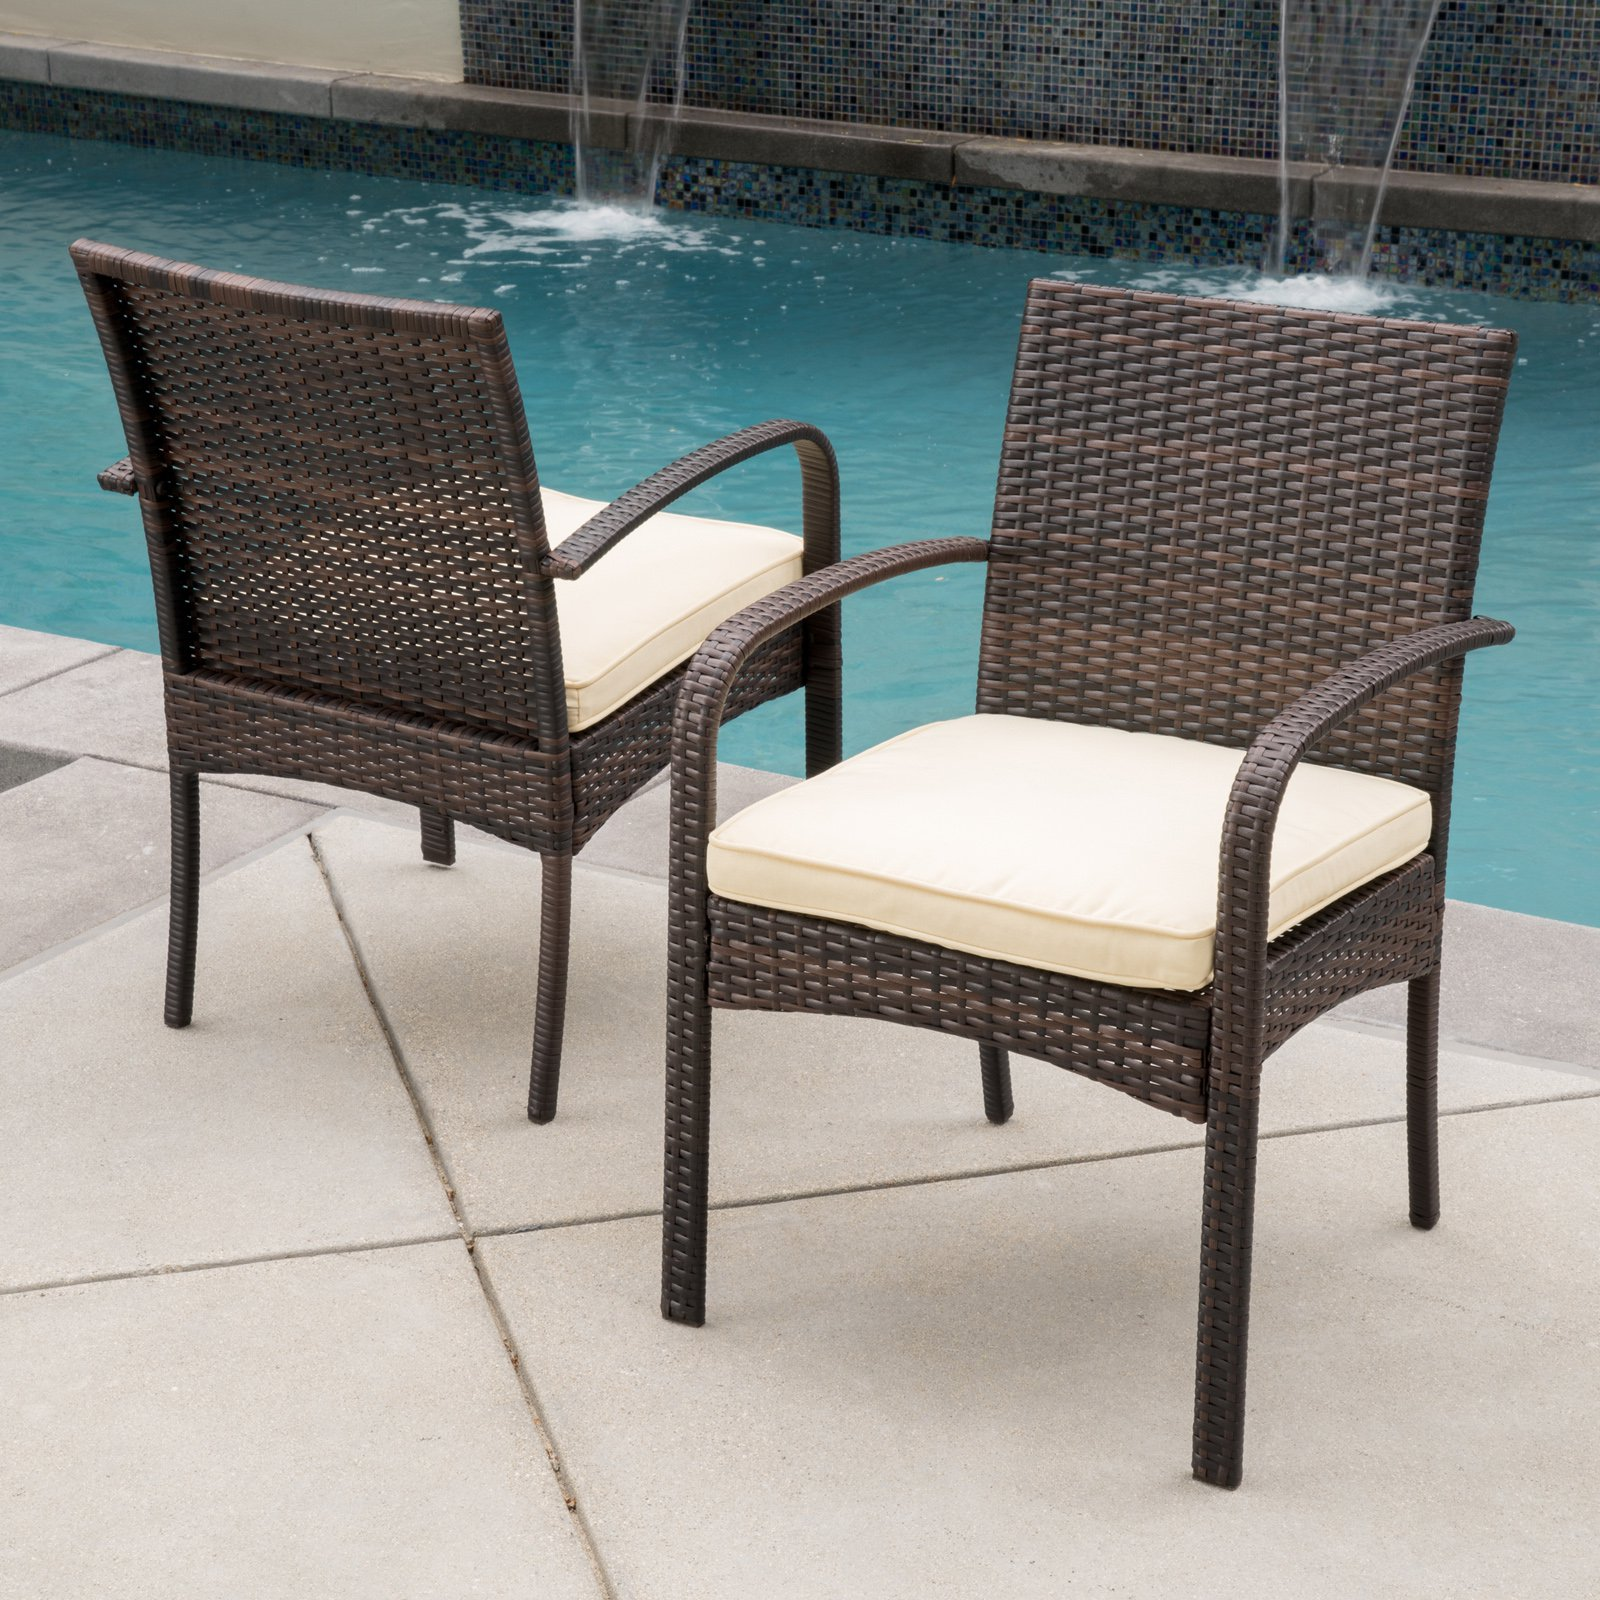 Patio chairs stools for Outside porch chairs